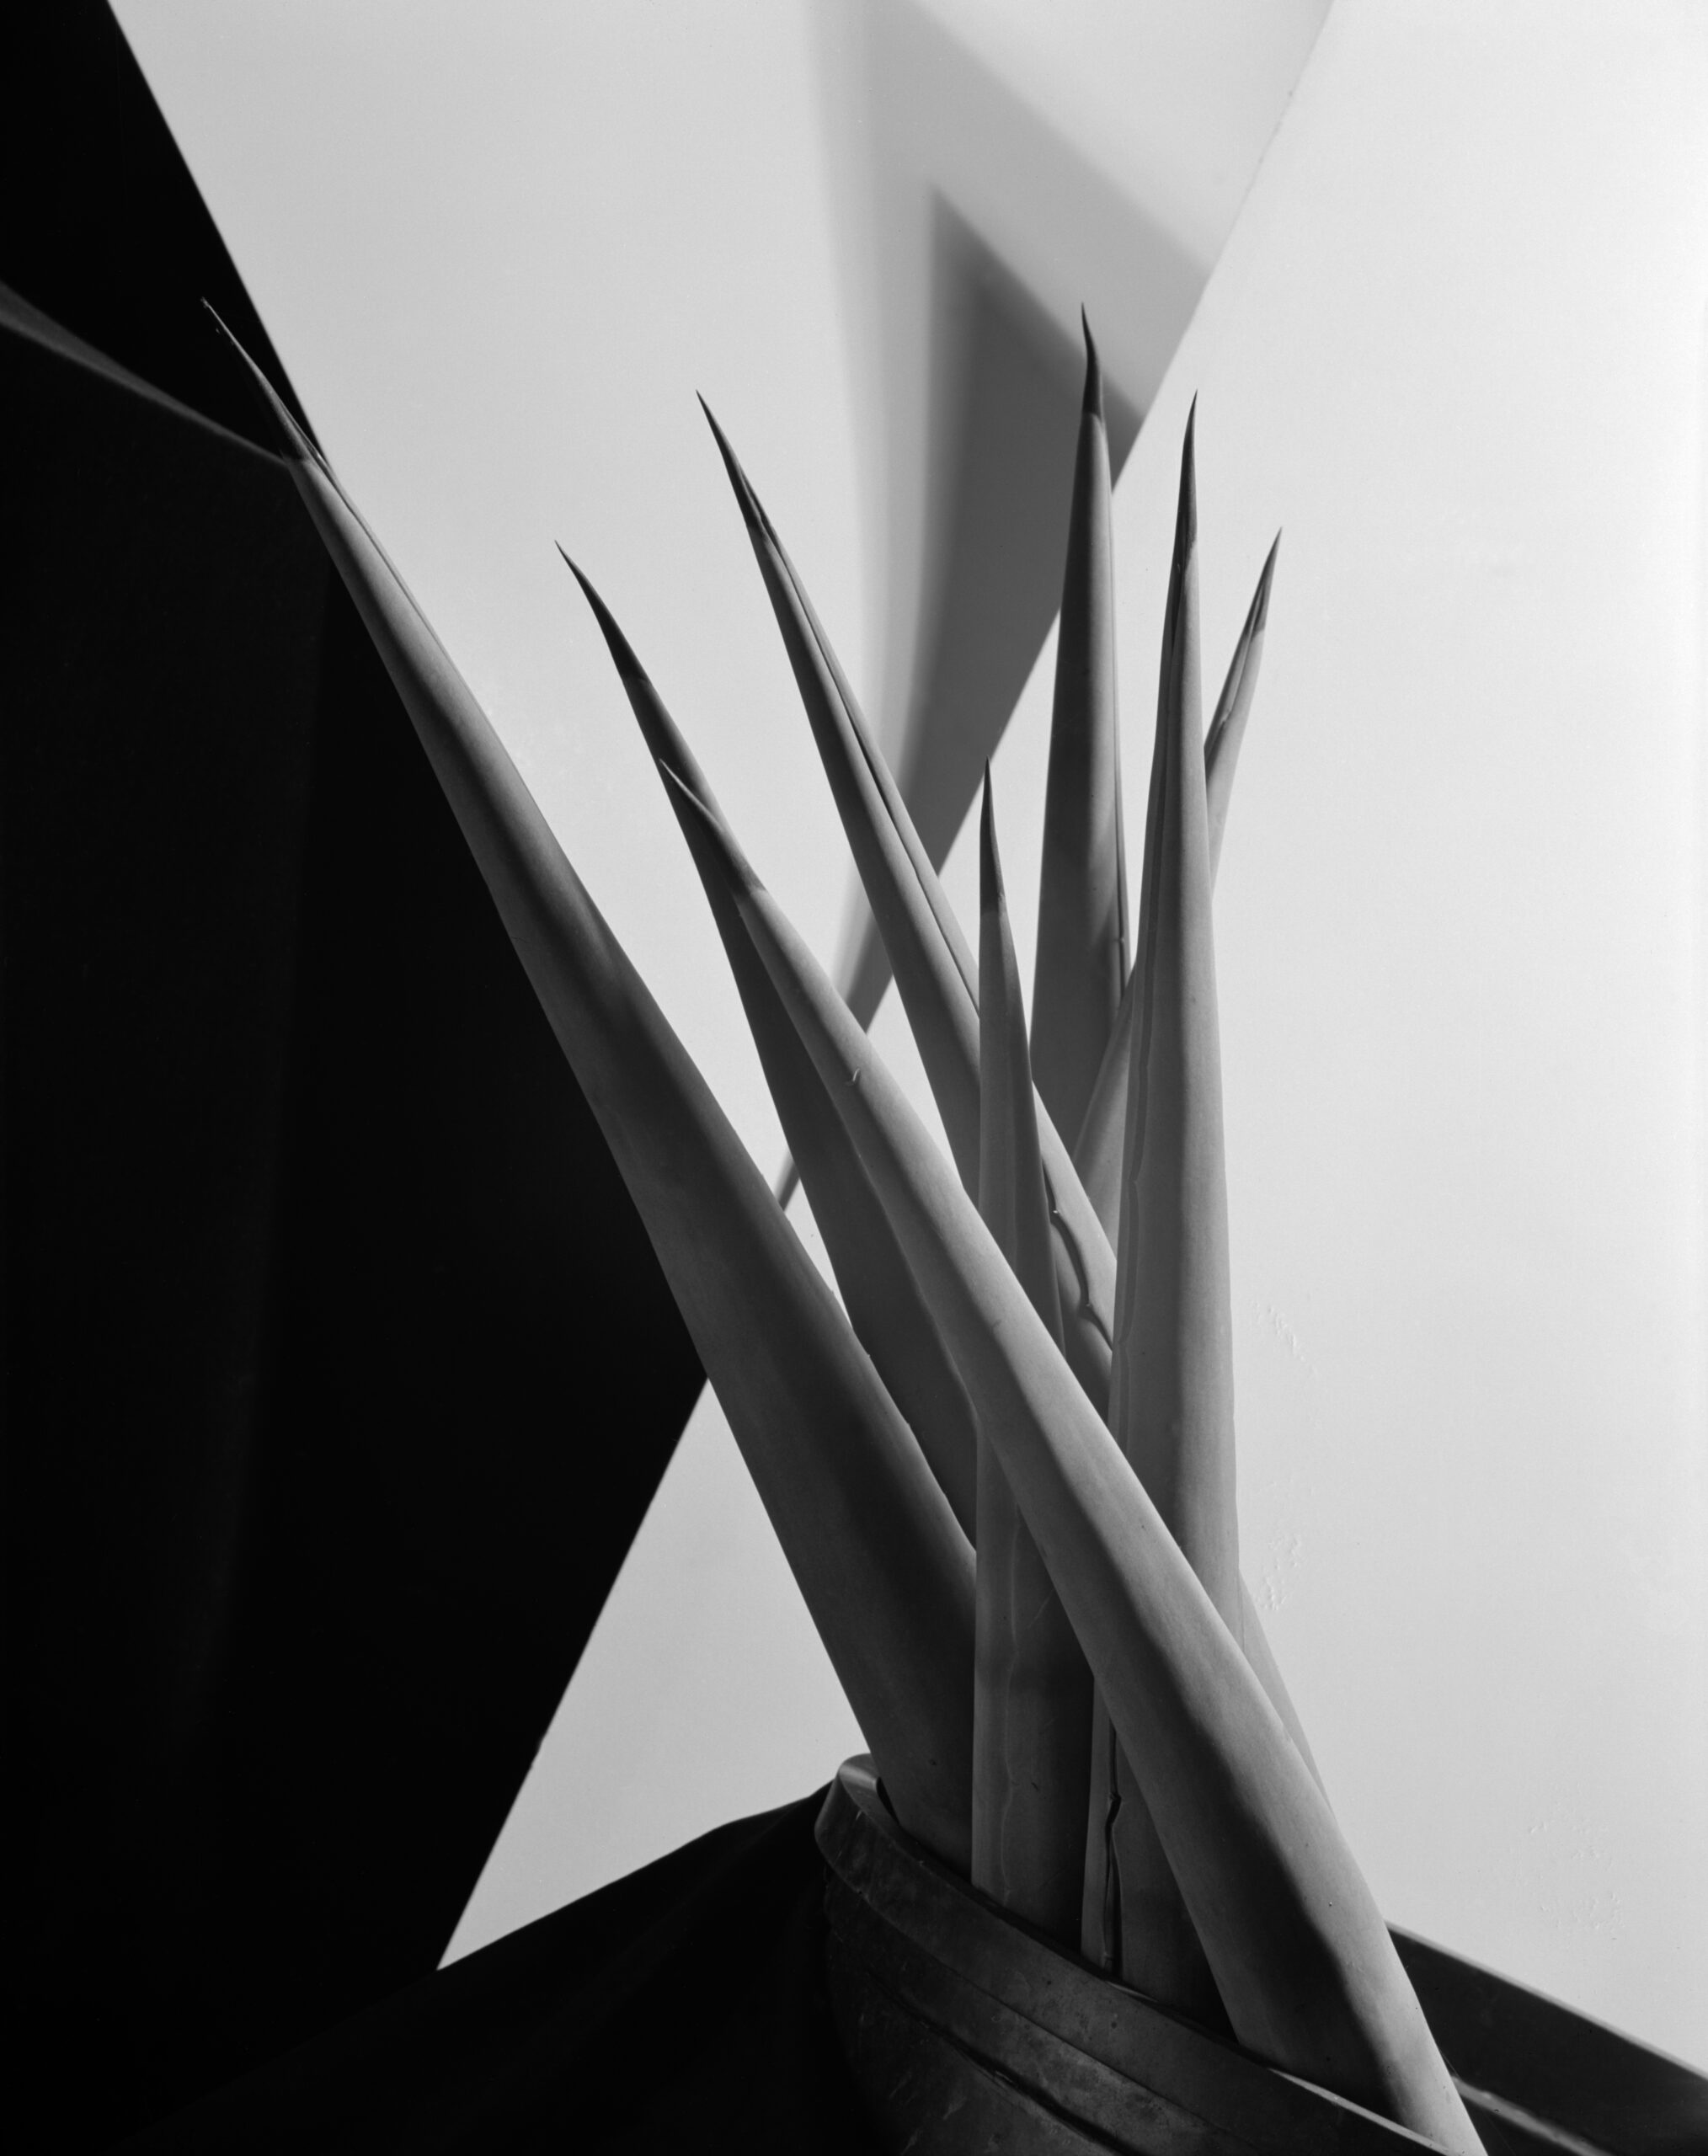 A group of agave leaves in the centre of the image grow against a background of black and white triangles. Black and white photograph by Imogen Cunningham, 1920s.